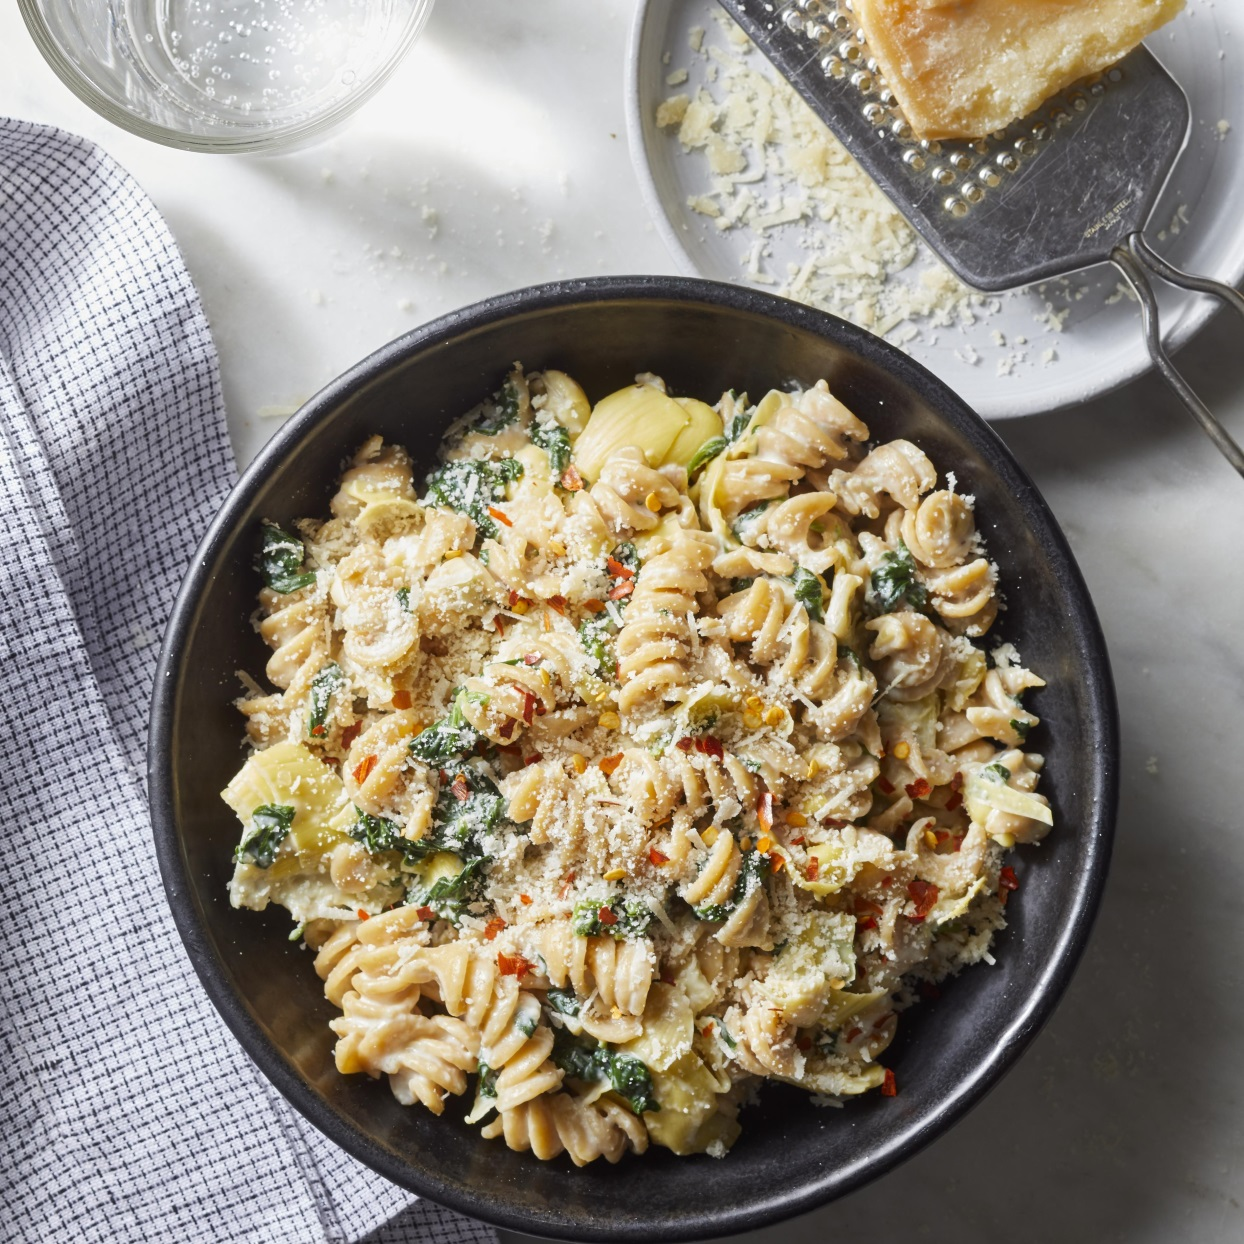 If you've ever wanted to make a meal out of warm spinach and artichoke dip, this creamy pasta is for you. And here's what's almost as good as the flavor of this comforting dish: the fact that this healthy dinner takes just 20 minutes to prepare. Source: EatingWell.com, September 2019